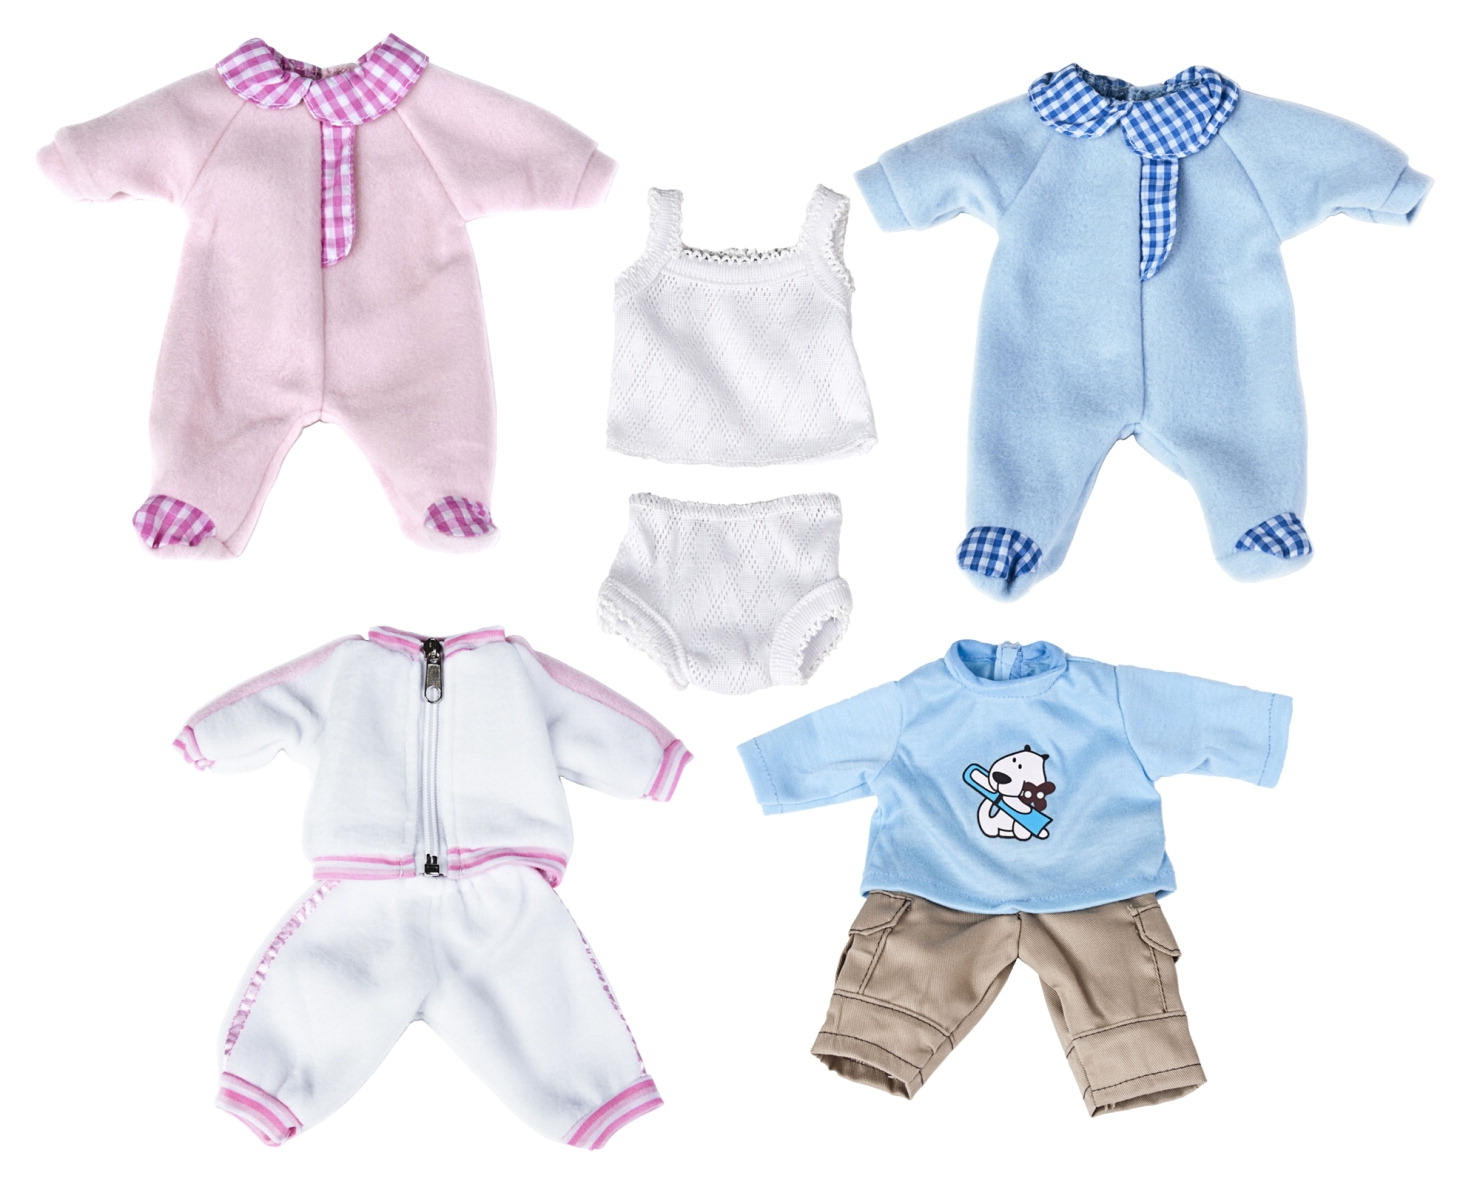 Toys Dolls Playsets & Toy Figures Doll & Action Figure Accessories - 1576271 - Miniland Clothes For Newborn Baby Dolls; Set Of 5; 12-5/8 Inch 1576271